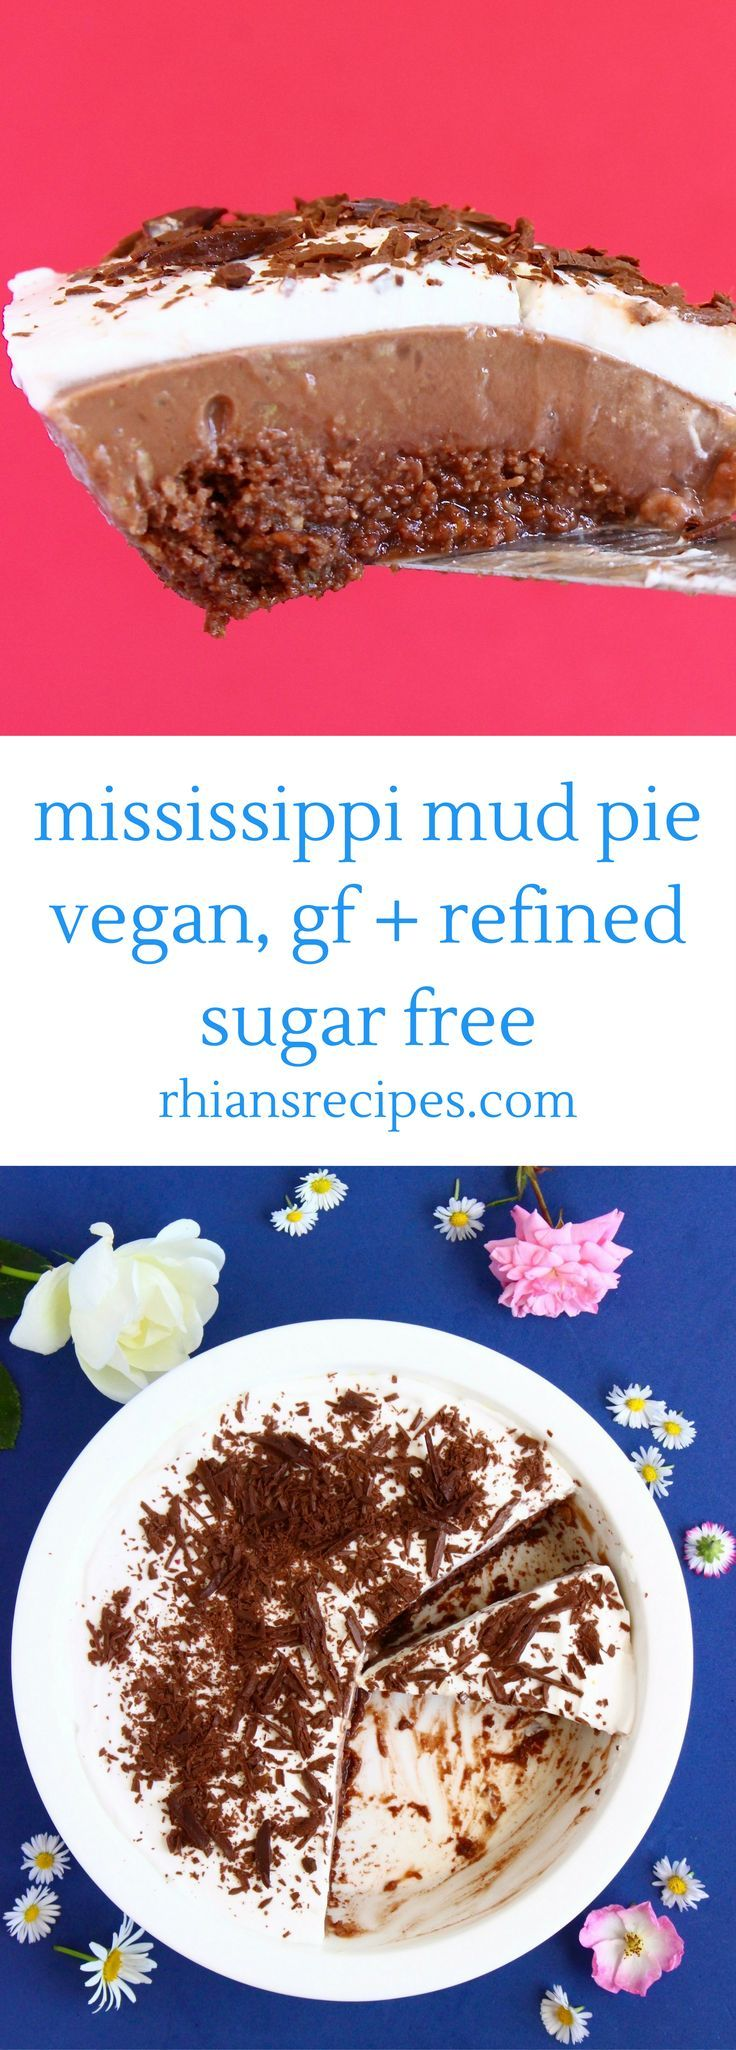 This vegan, gluten-free + refined sugar free Mississippi Mud Pie is the most delicious and indulgent dessert, but so much healthier than the traditional version